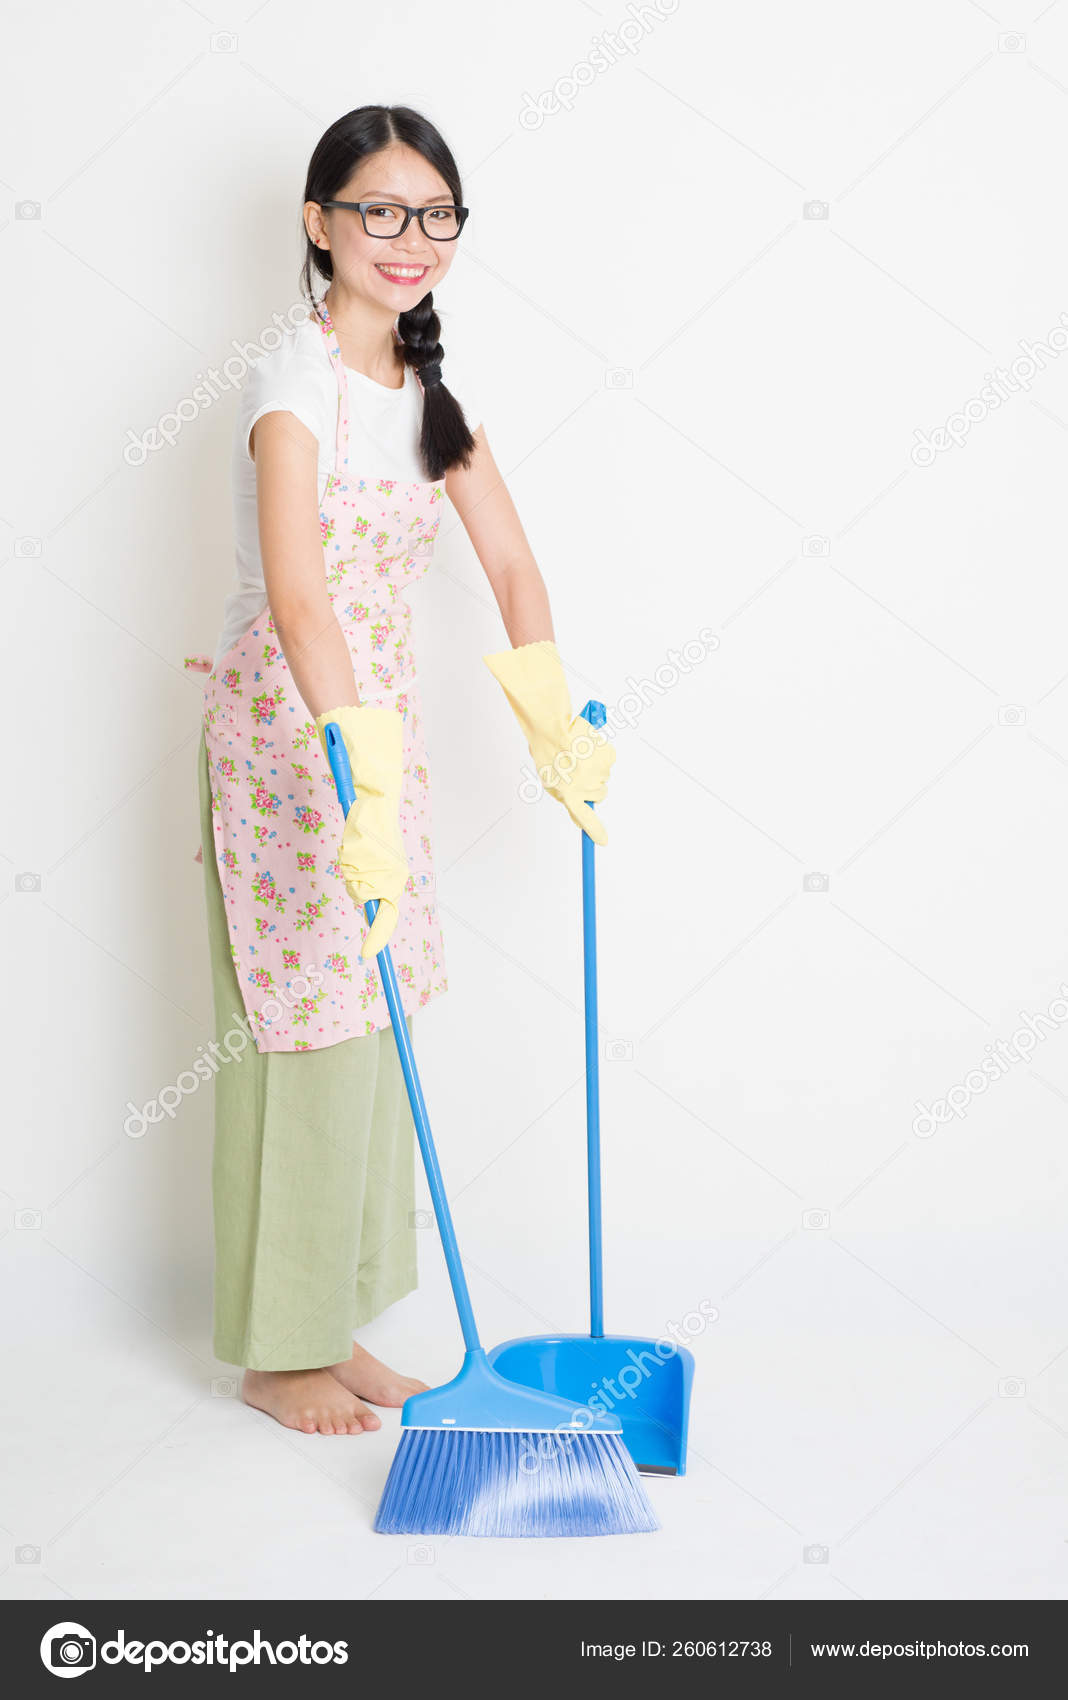 young asian housewife sweeping floor broom dustpan cleaning floor stock photo c yayimages 260612738 https depositphotos com 260612738 stock photo young asian housewife sweeping floor html